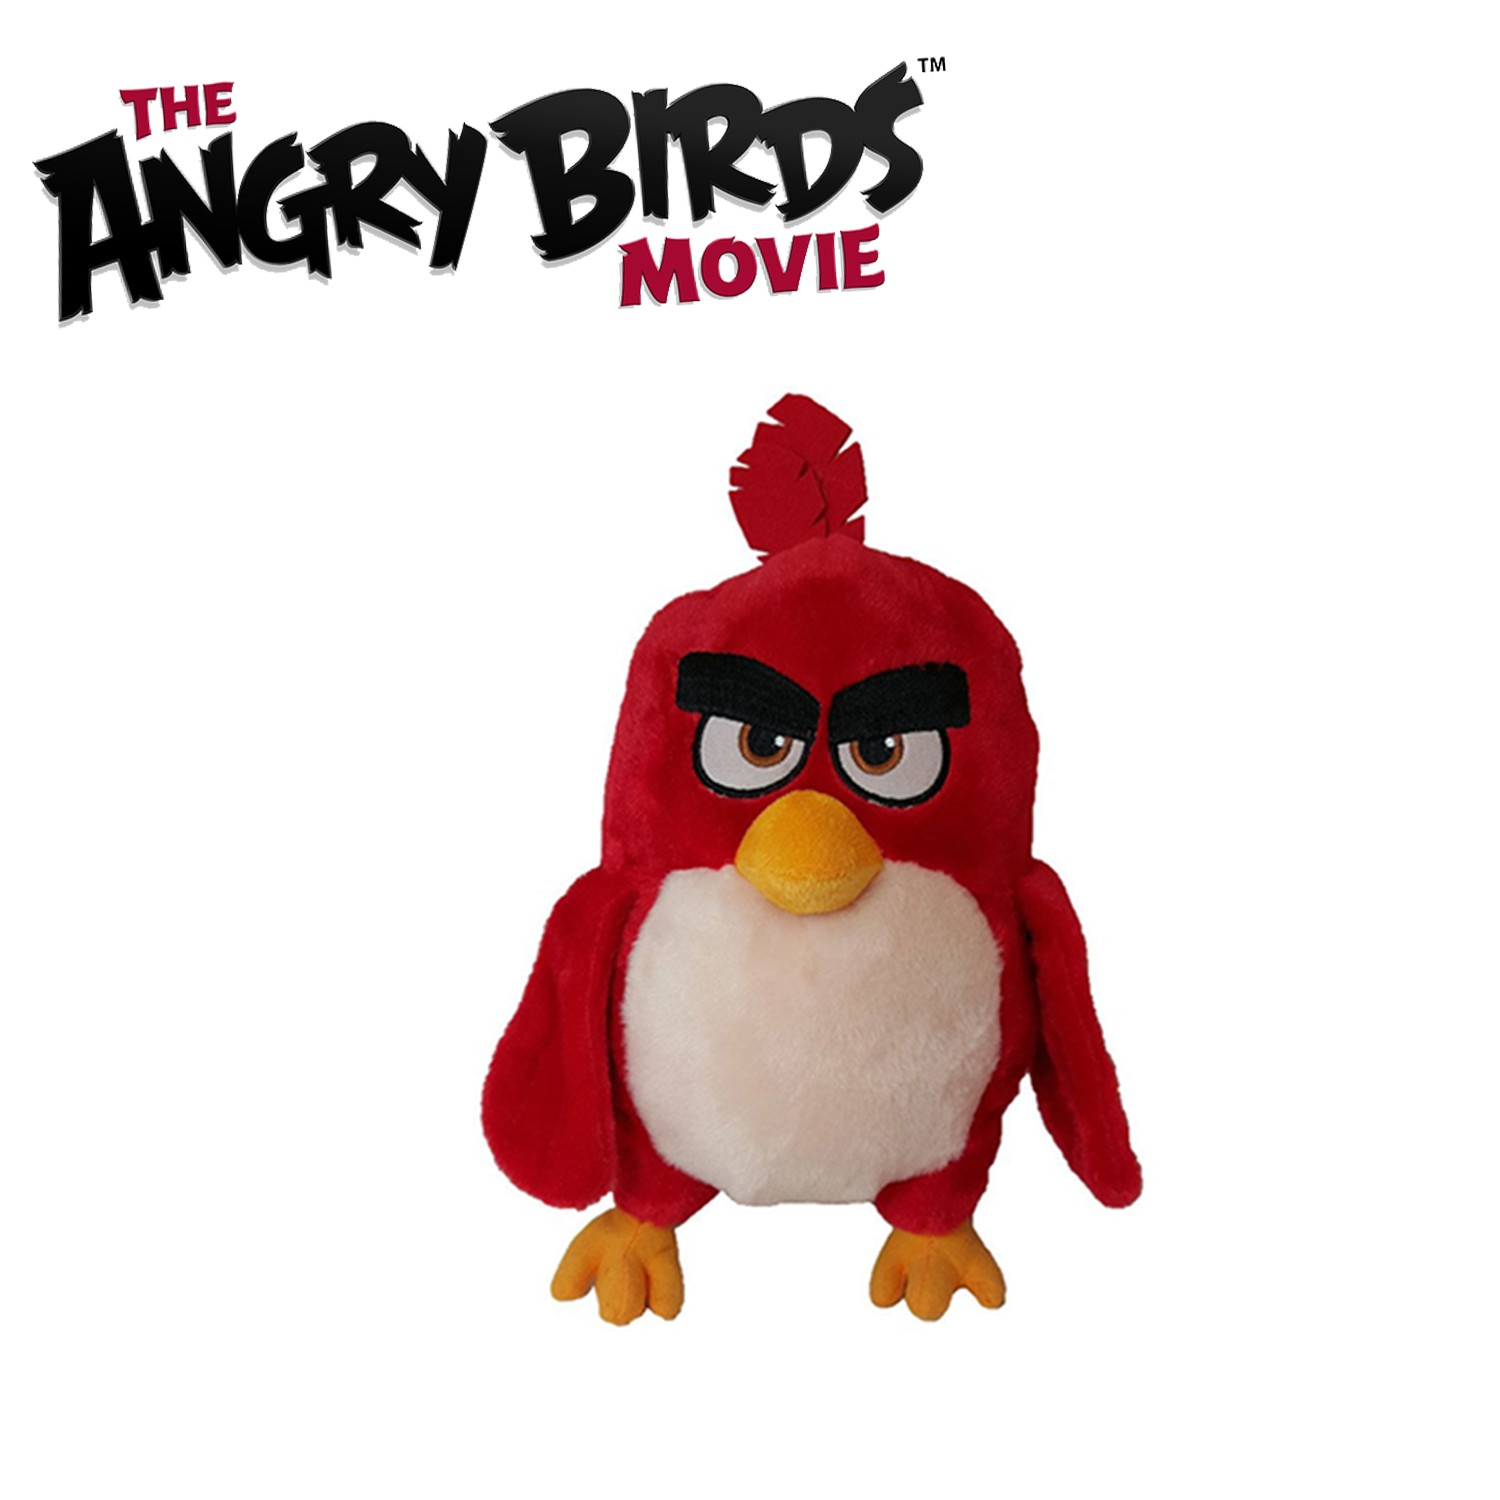 peluche angry birds movie 20cm film 2016 a scelta ufficiale rovio plush beanie ebay. Black Bedroom Furniture Sets. Home Design Ideas